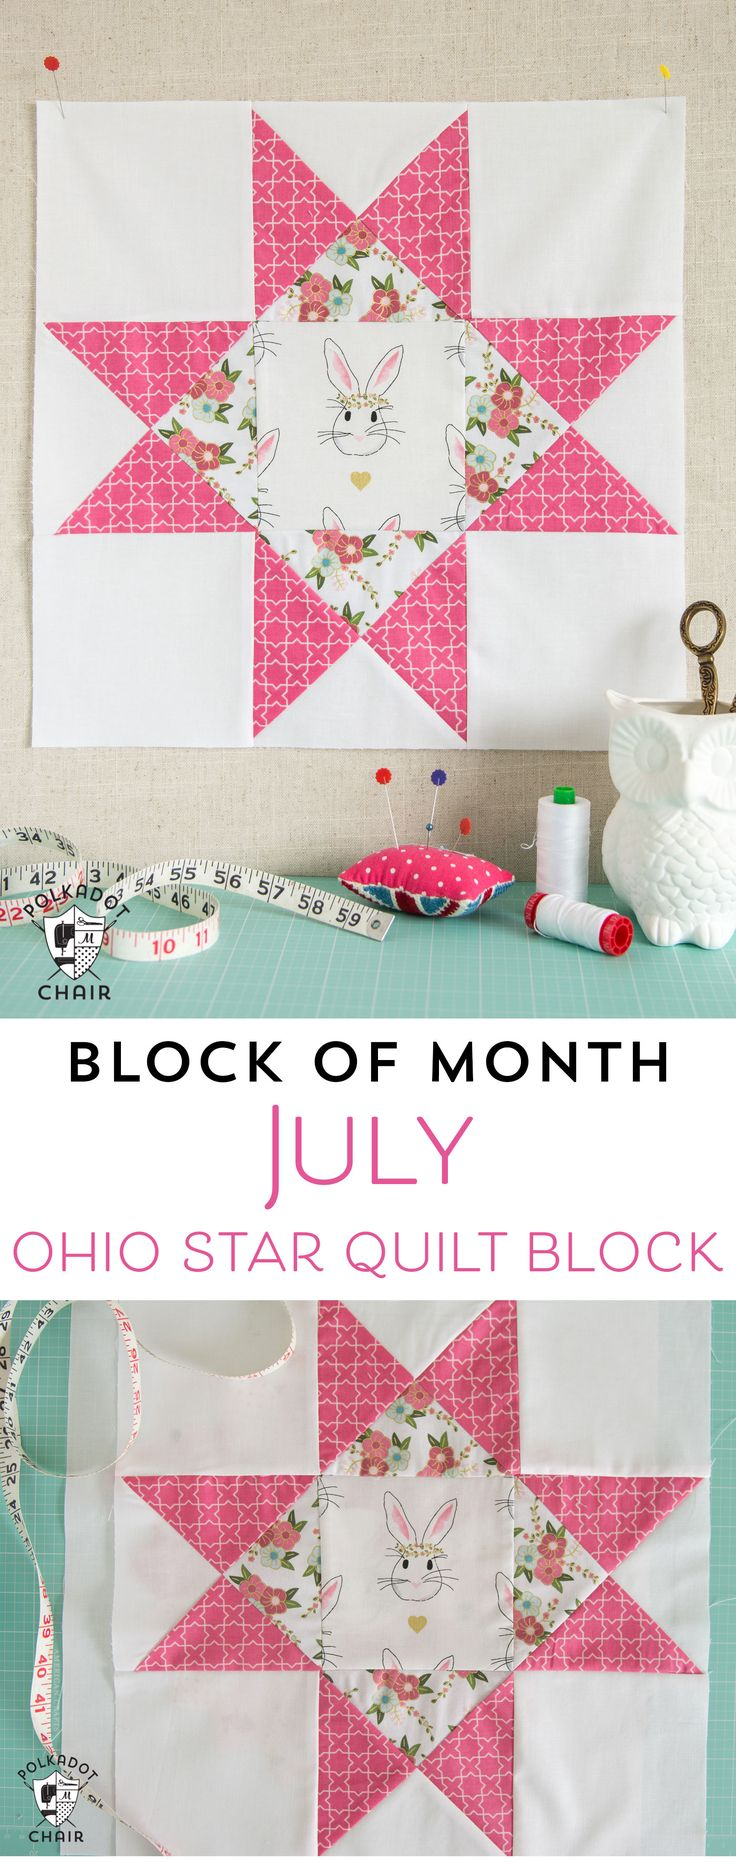 The July Quilt Block of the Month; the Ohio Star Quilt Block, includes full meas...